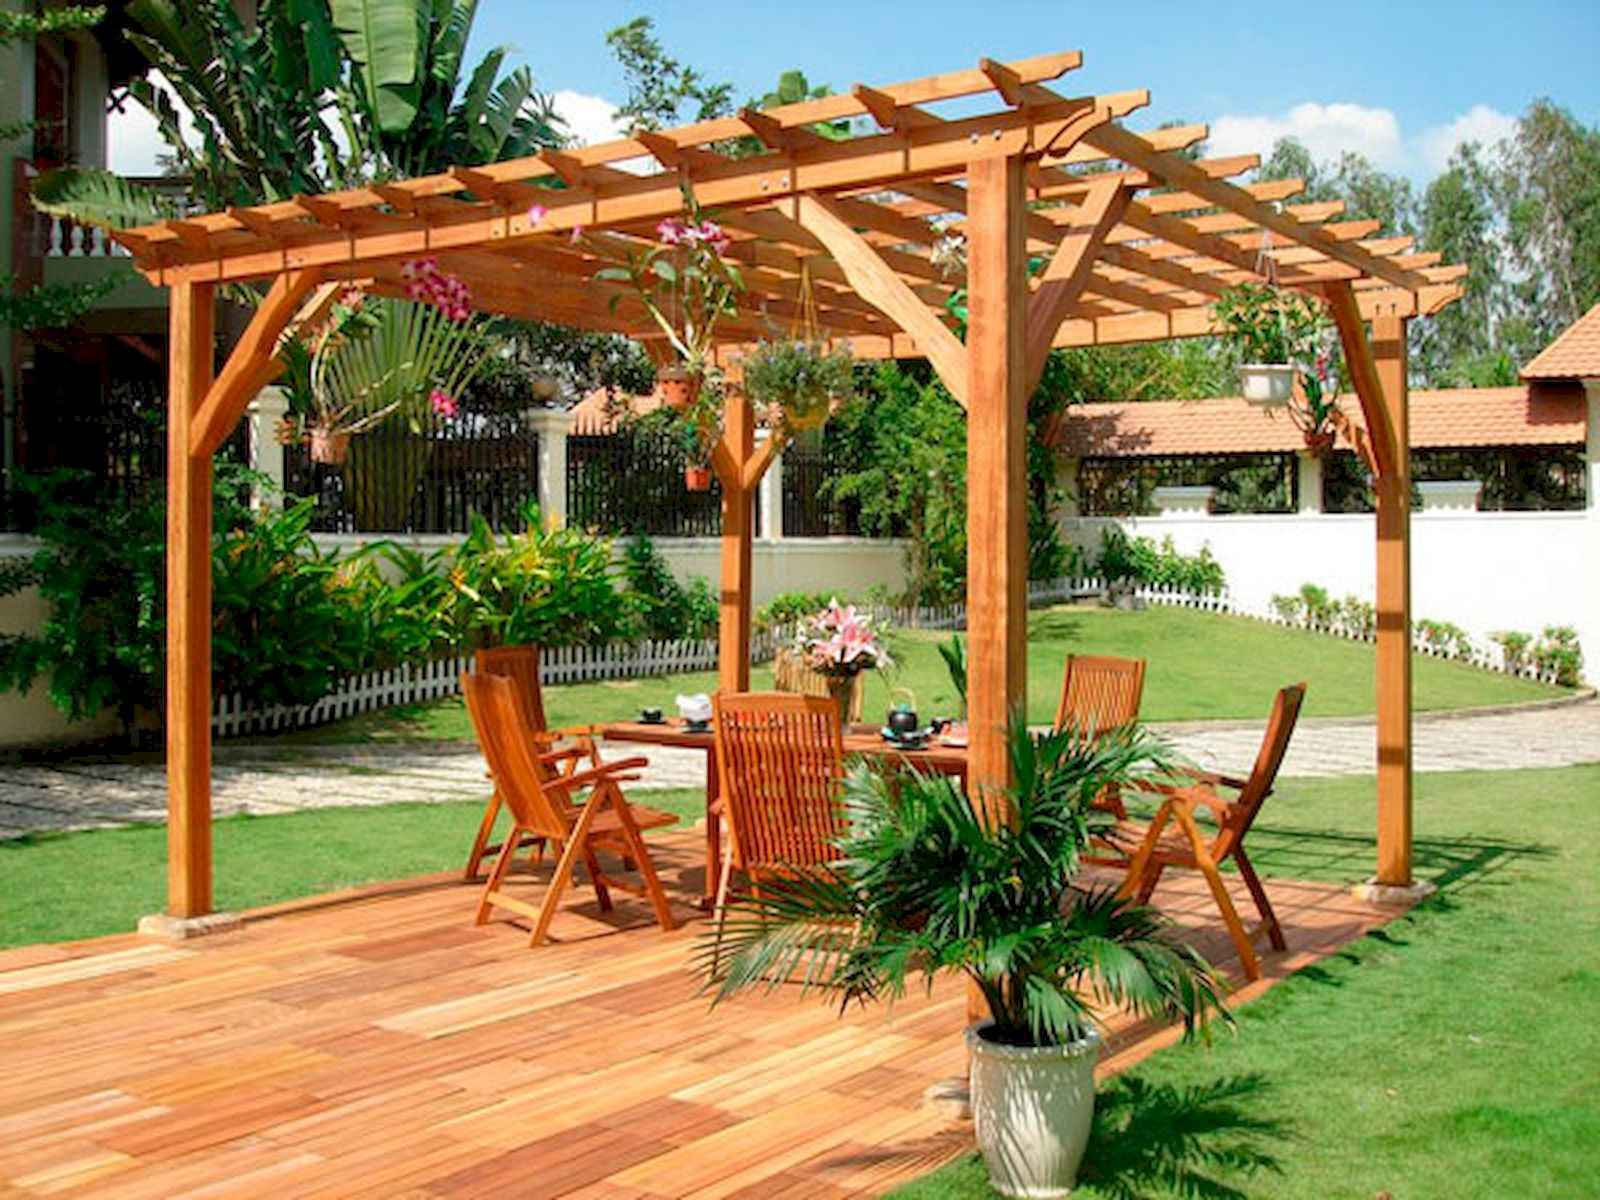 80 DIY Summery Backyard Projects Ideas Make Your Summer Awesome (58)